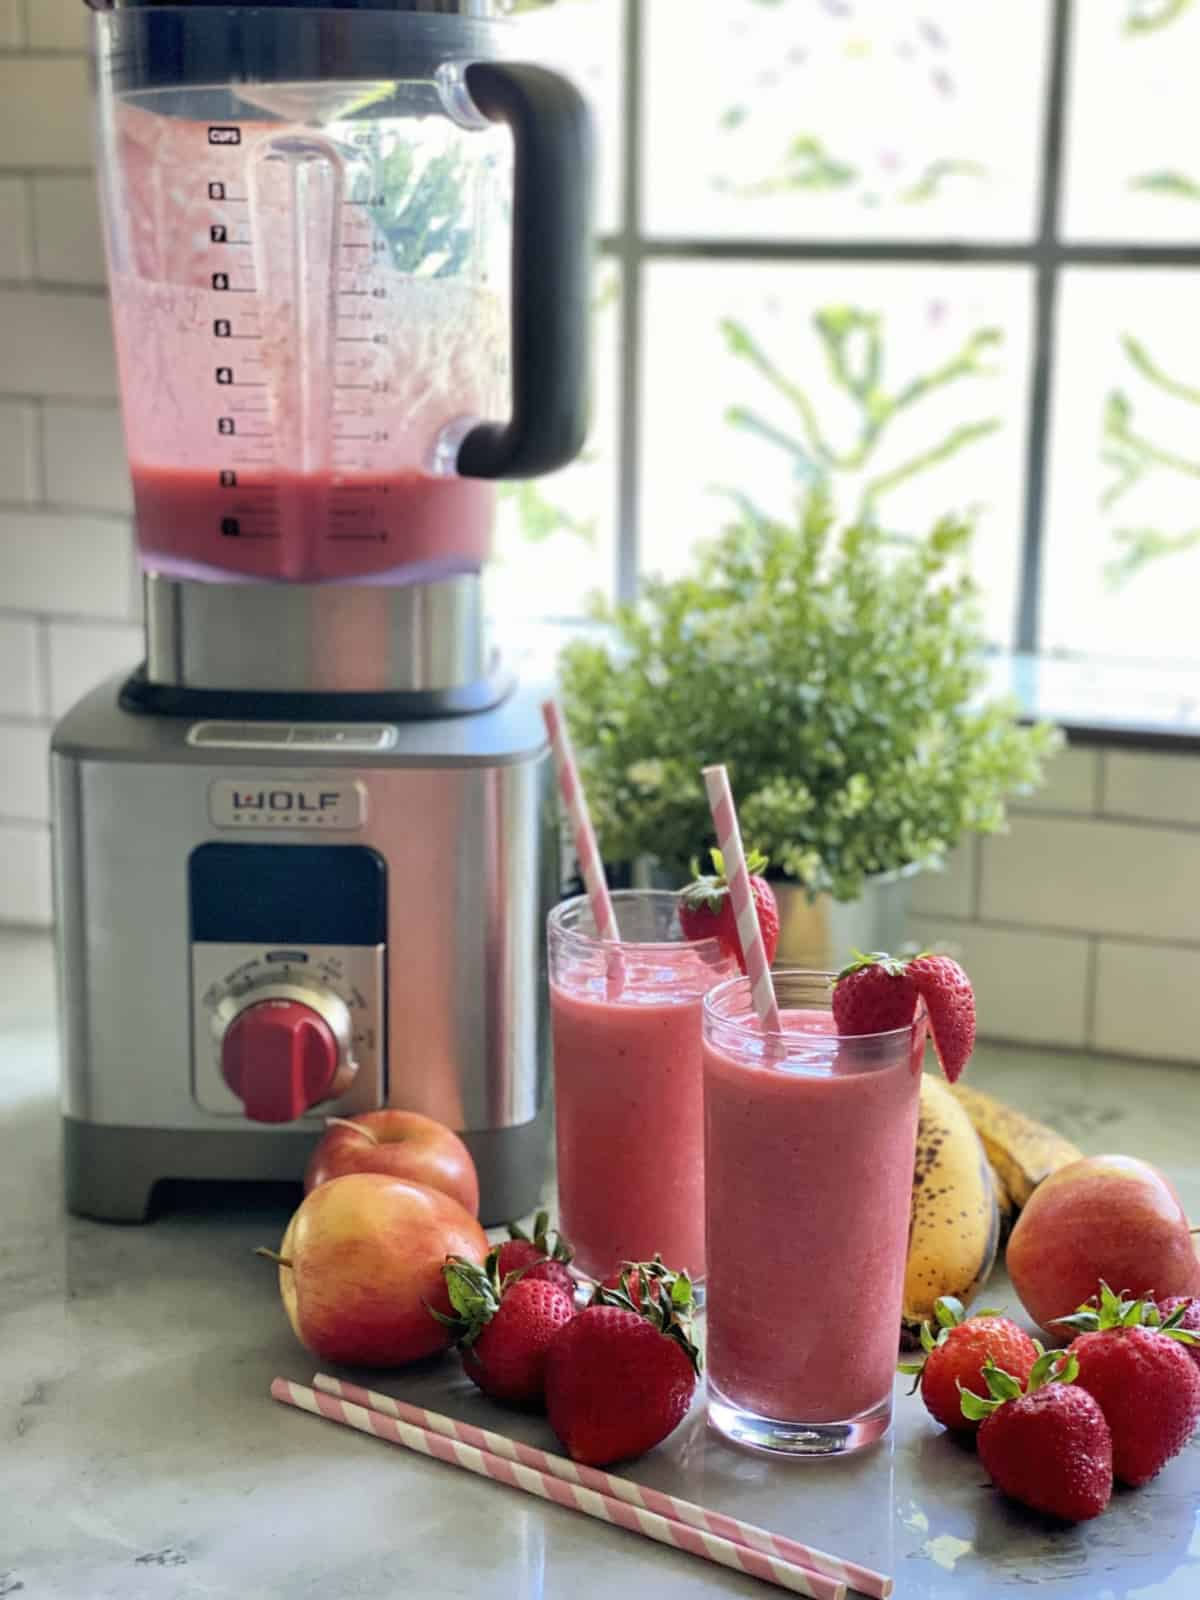 Two glasses with smoothies next to a blender with fruit on the counter.